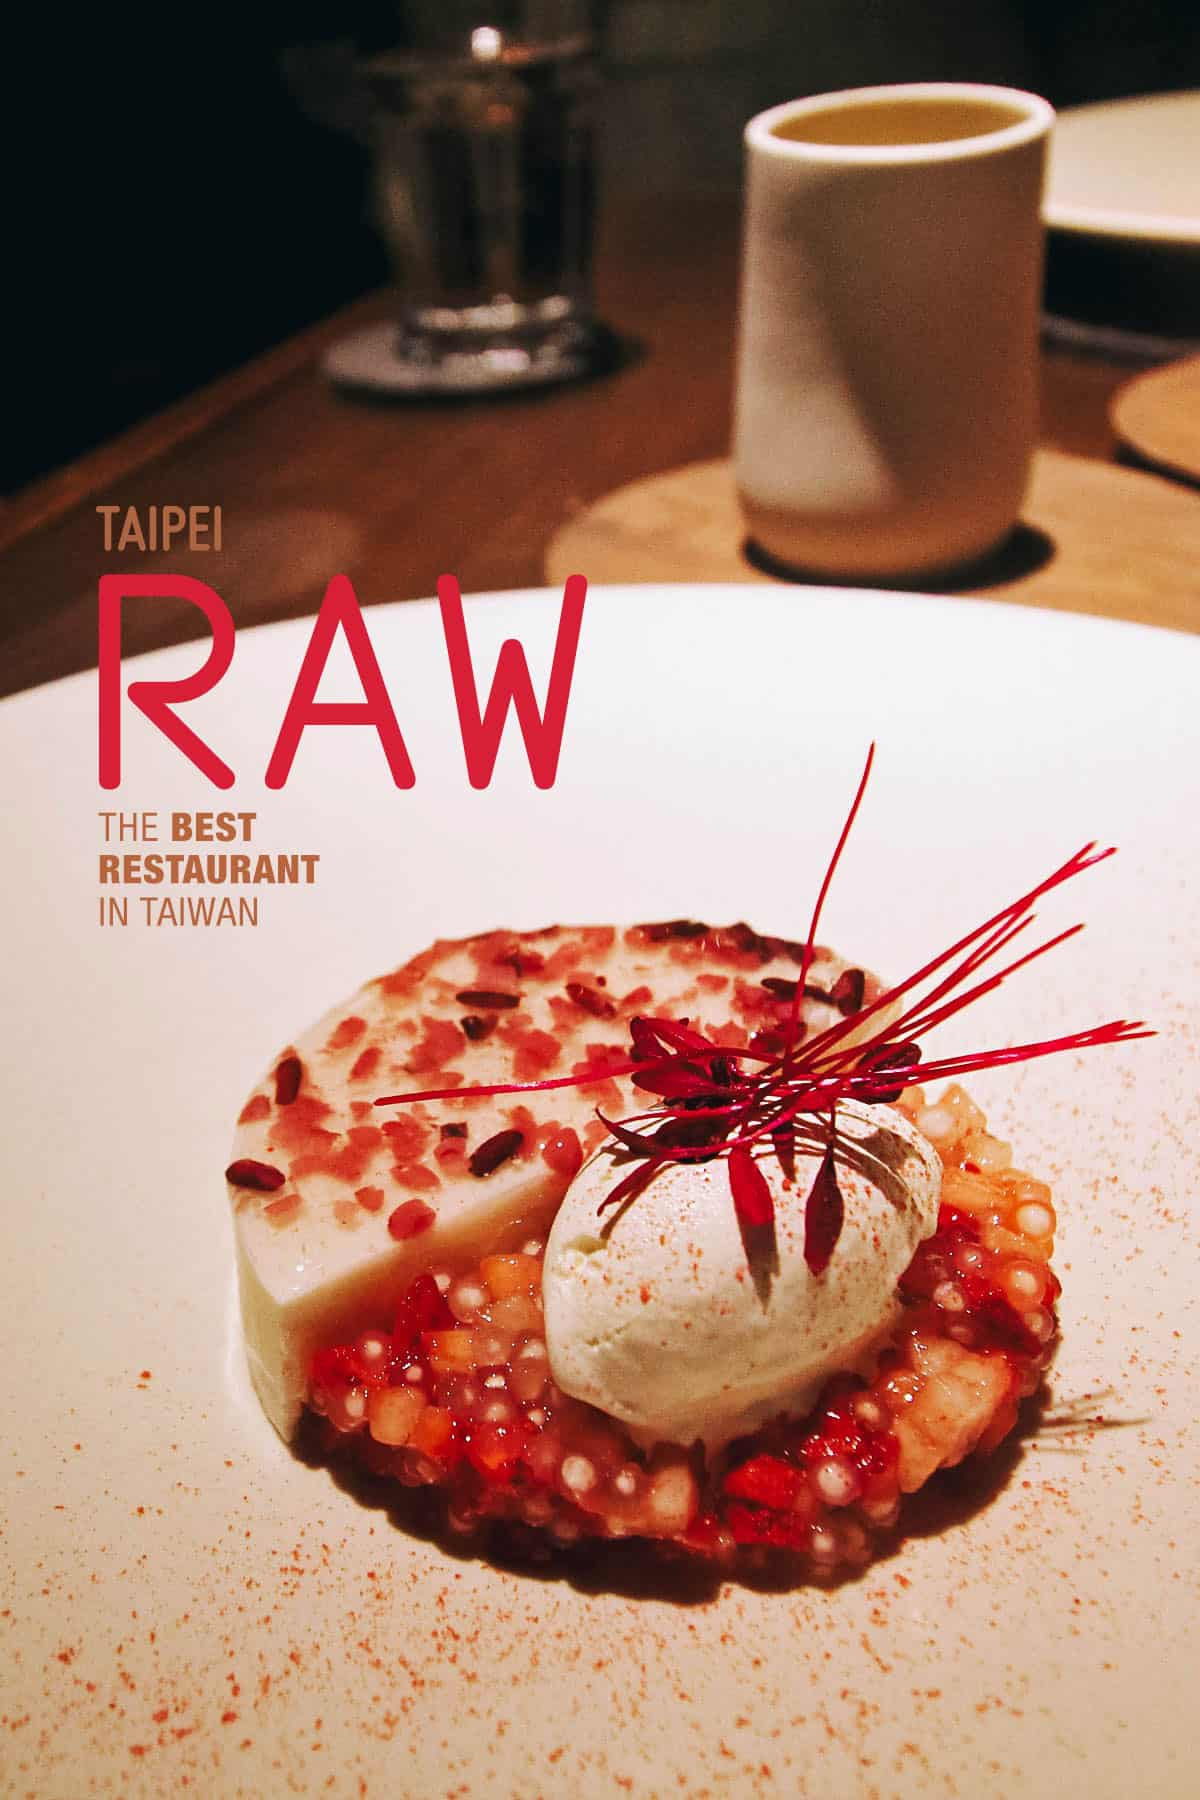 Dessert at RAW in Taipei, Taiwan